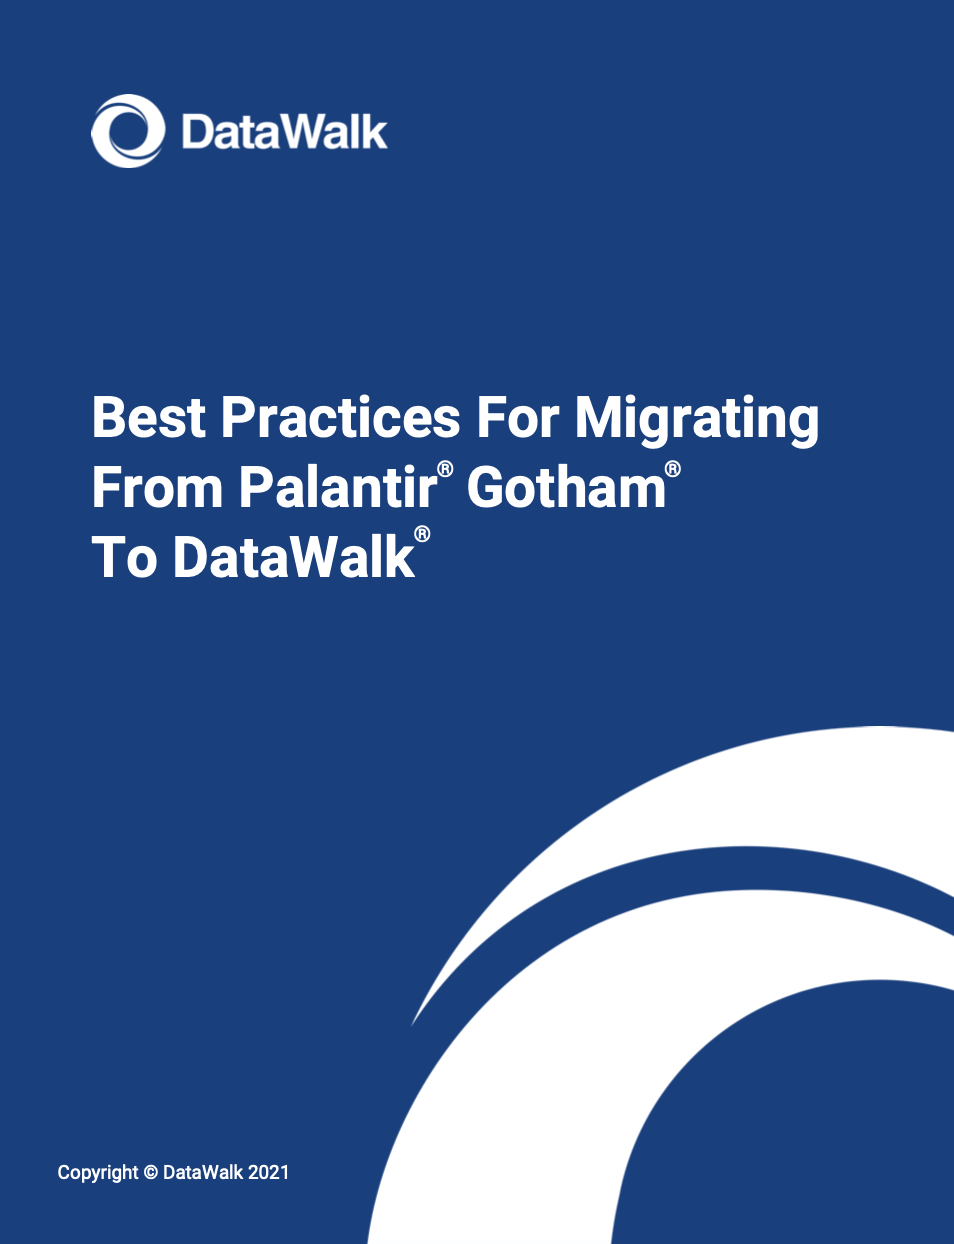 Best Practices For Migrating From Palantir Gotham To DataWalk